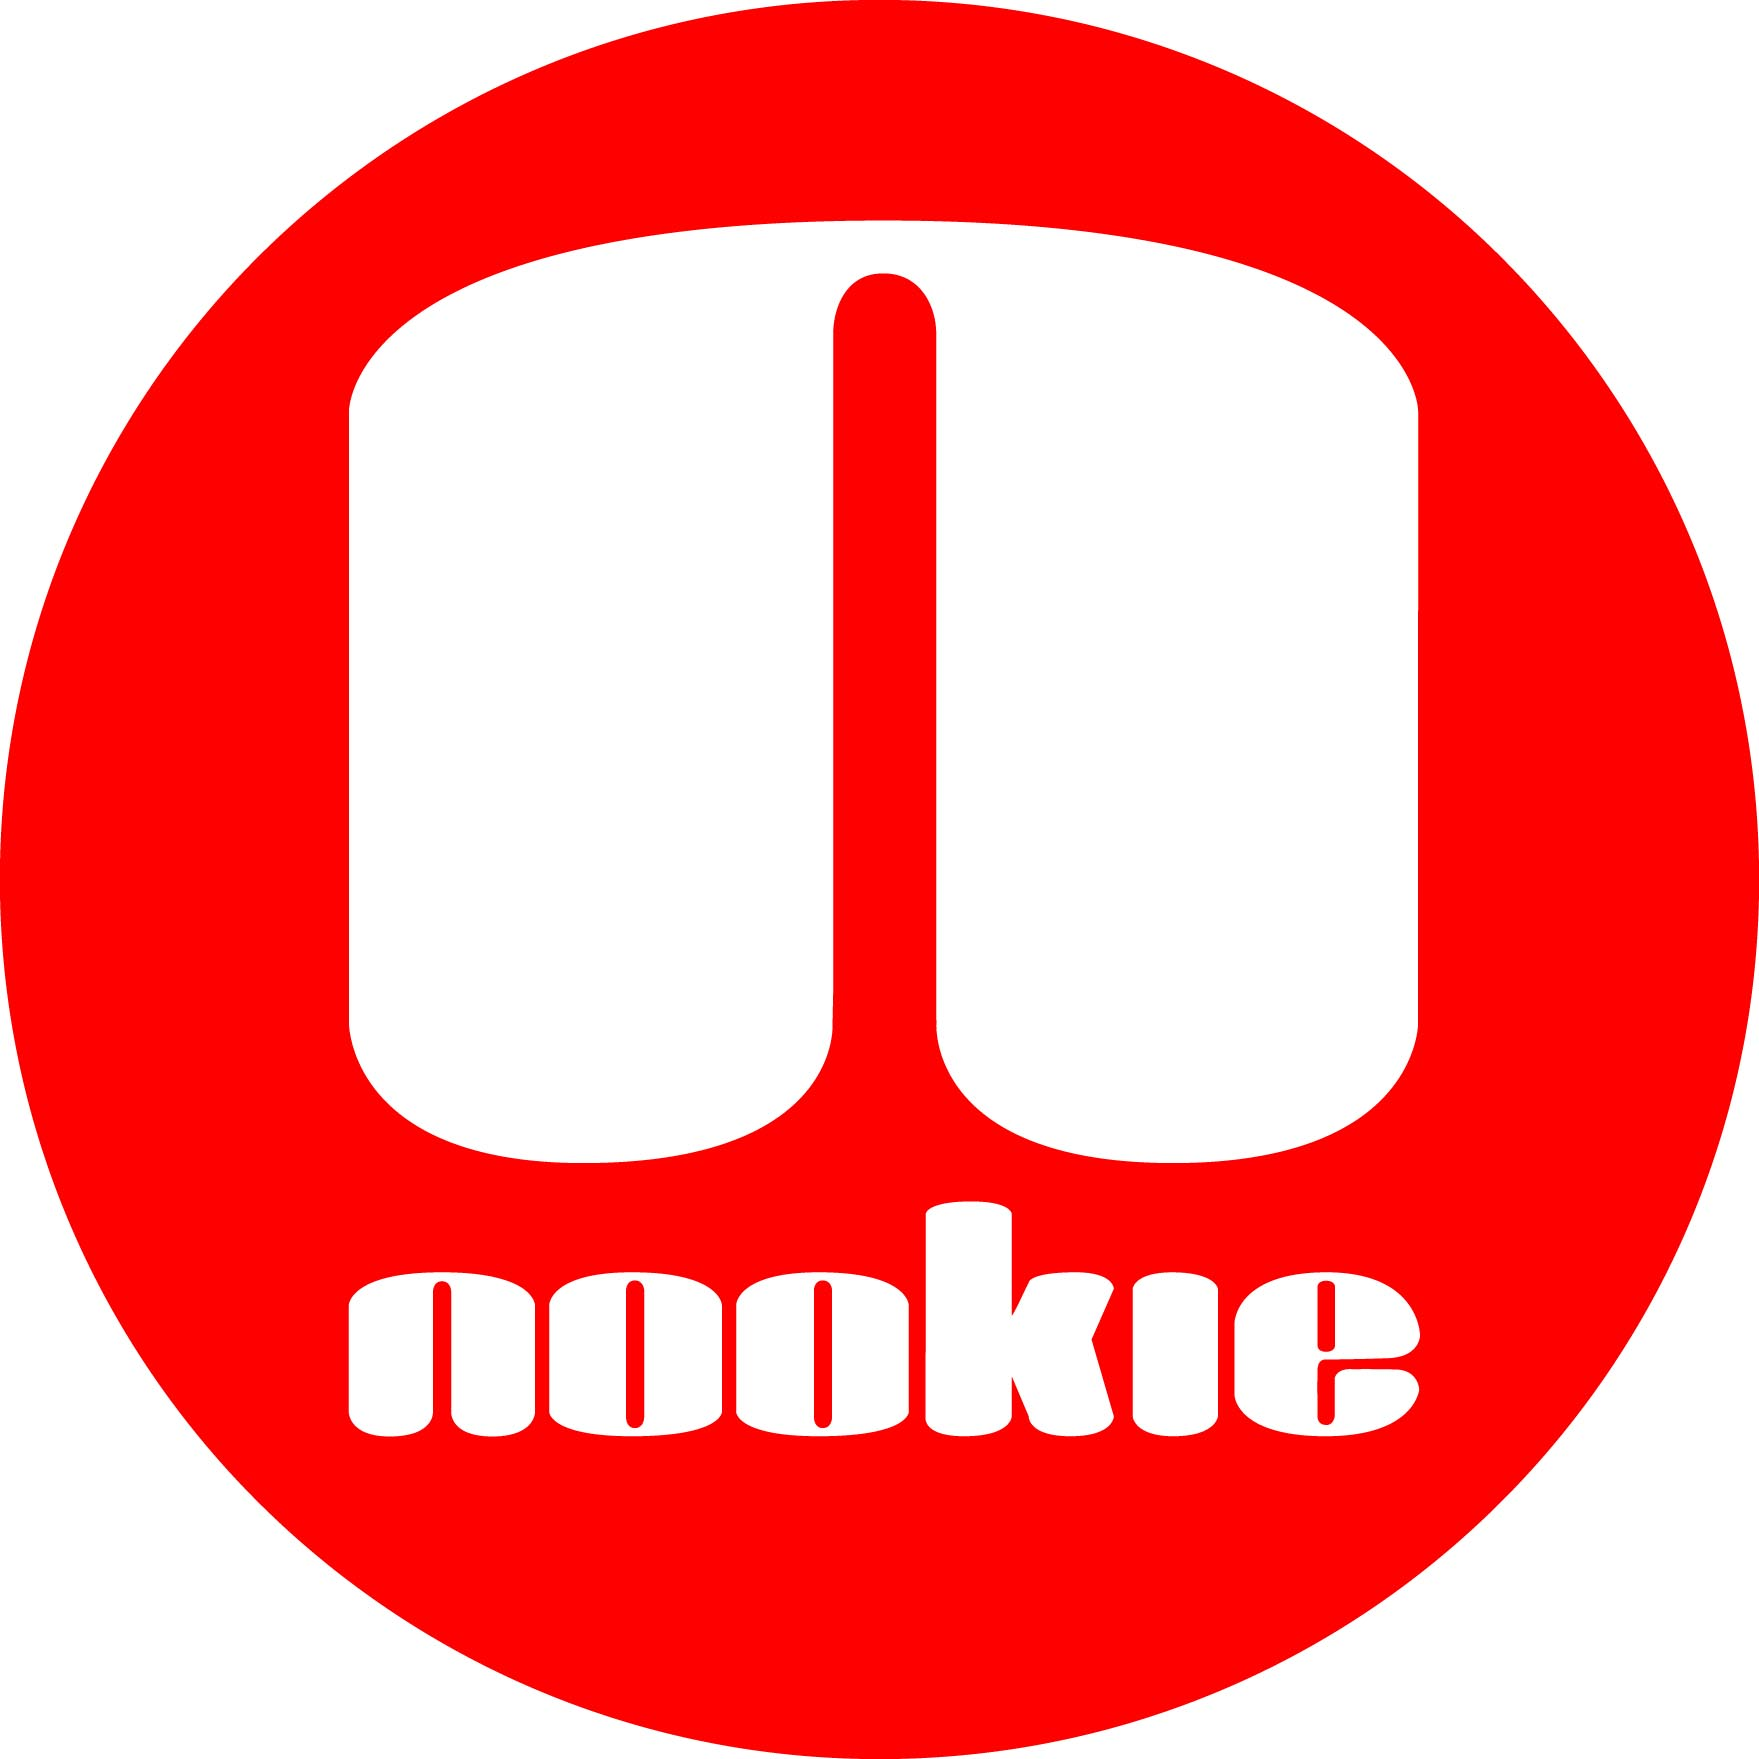 Nookie Logo Sticker Red Circle